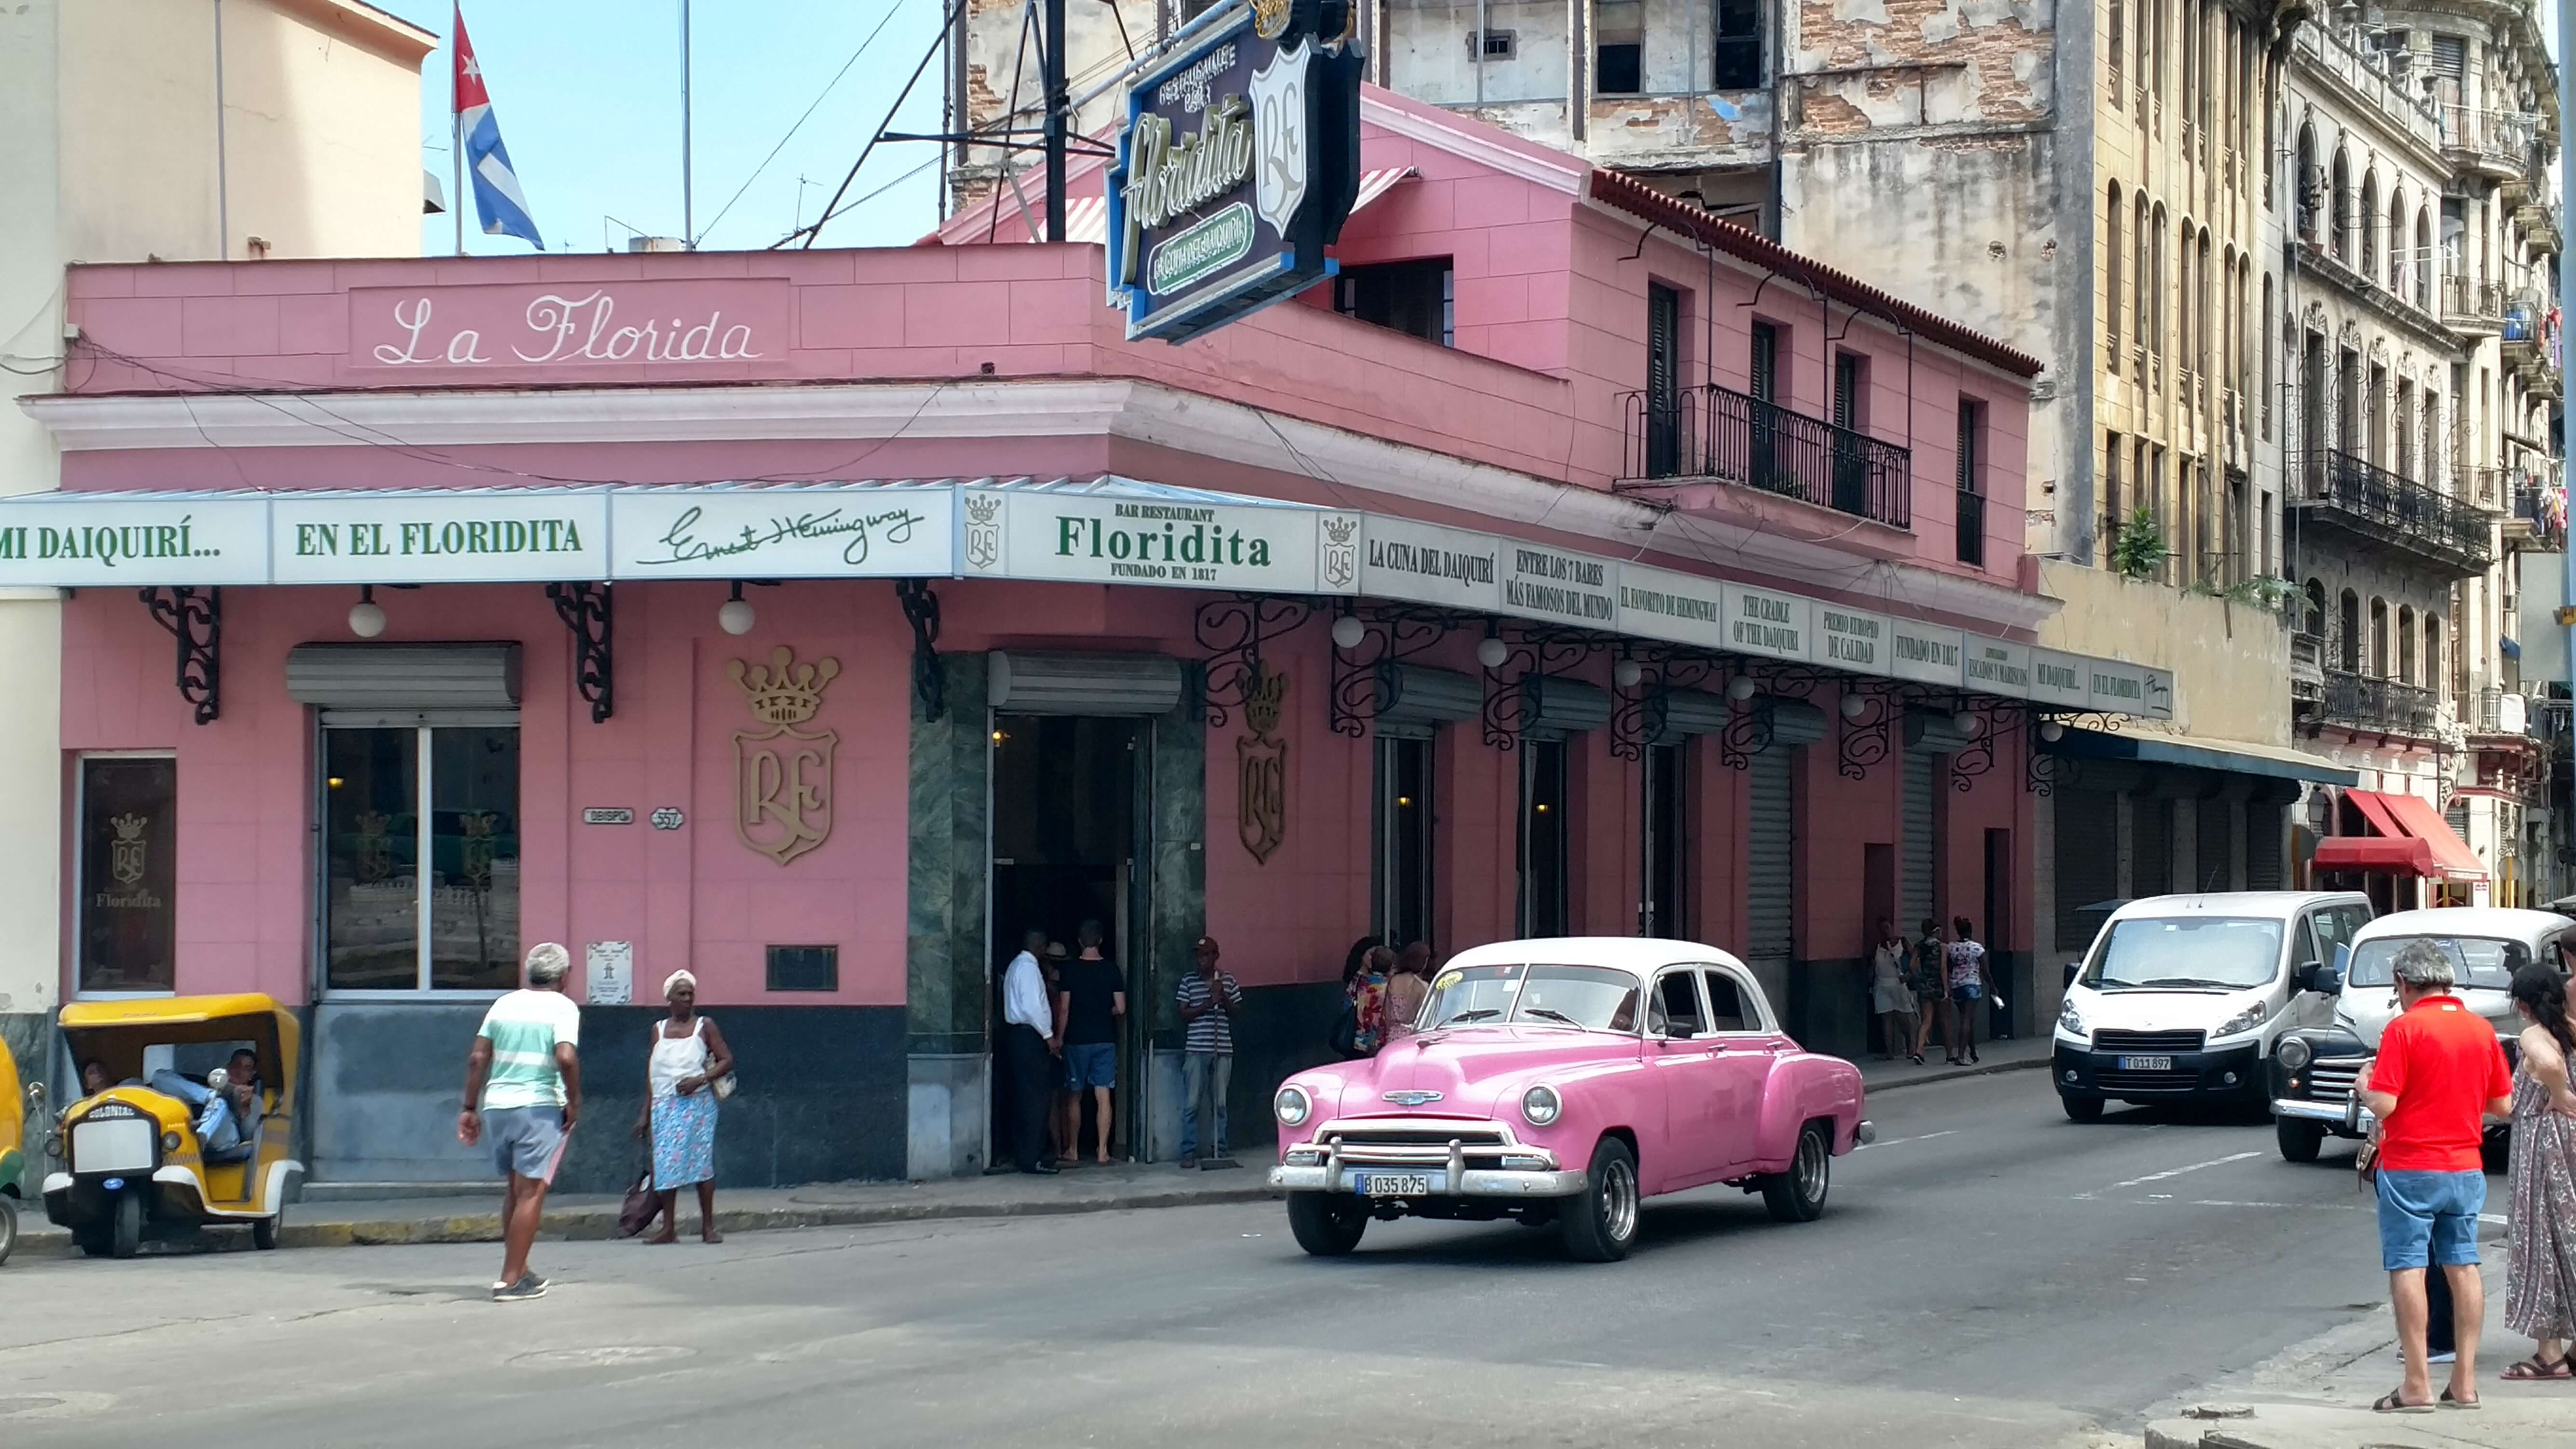 2017 Travel To Cuba This Is How Americans Can Still Travel To Cuba Legally